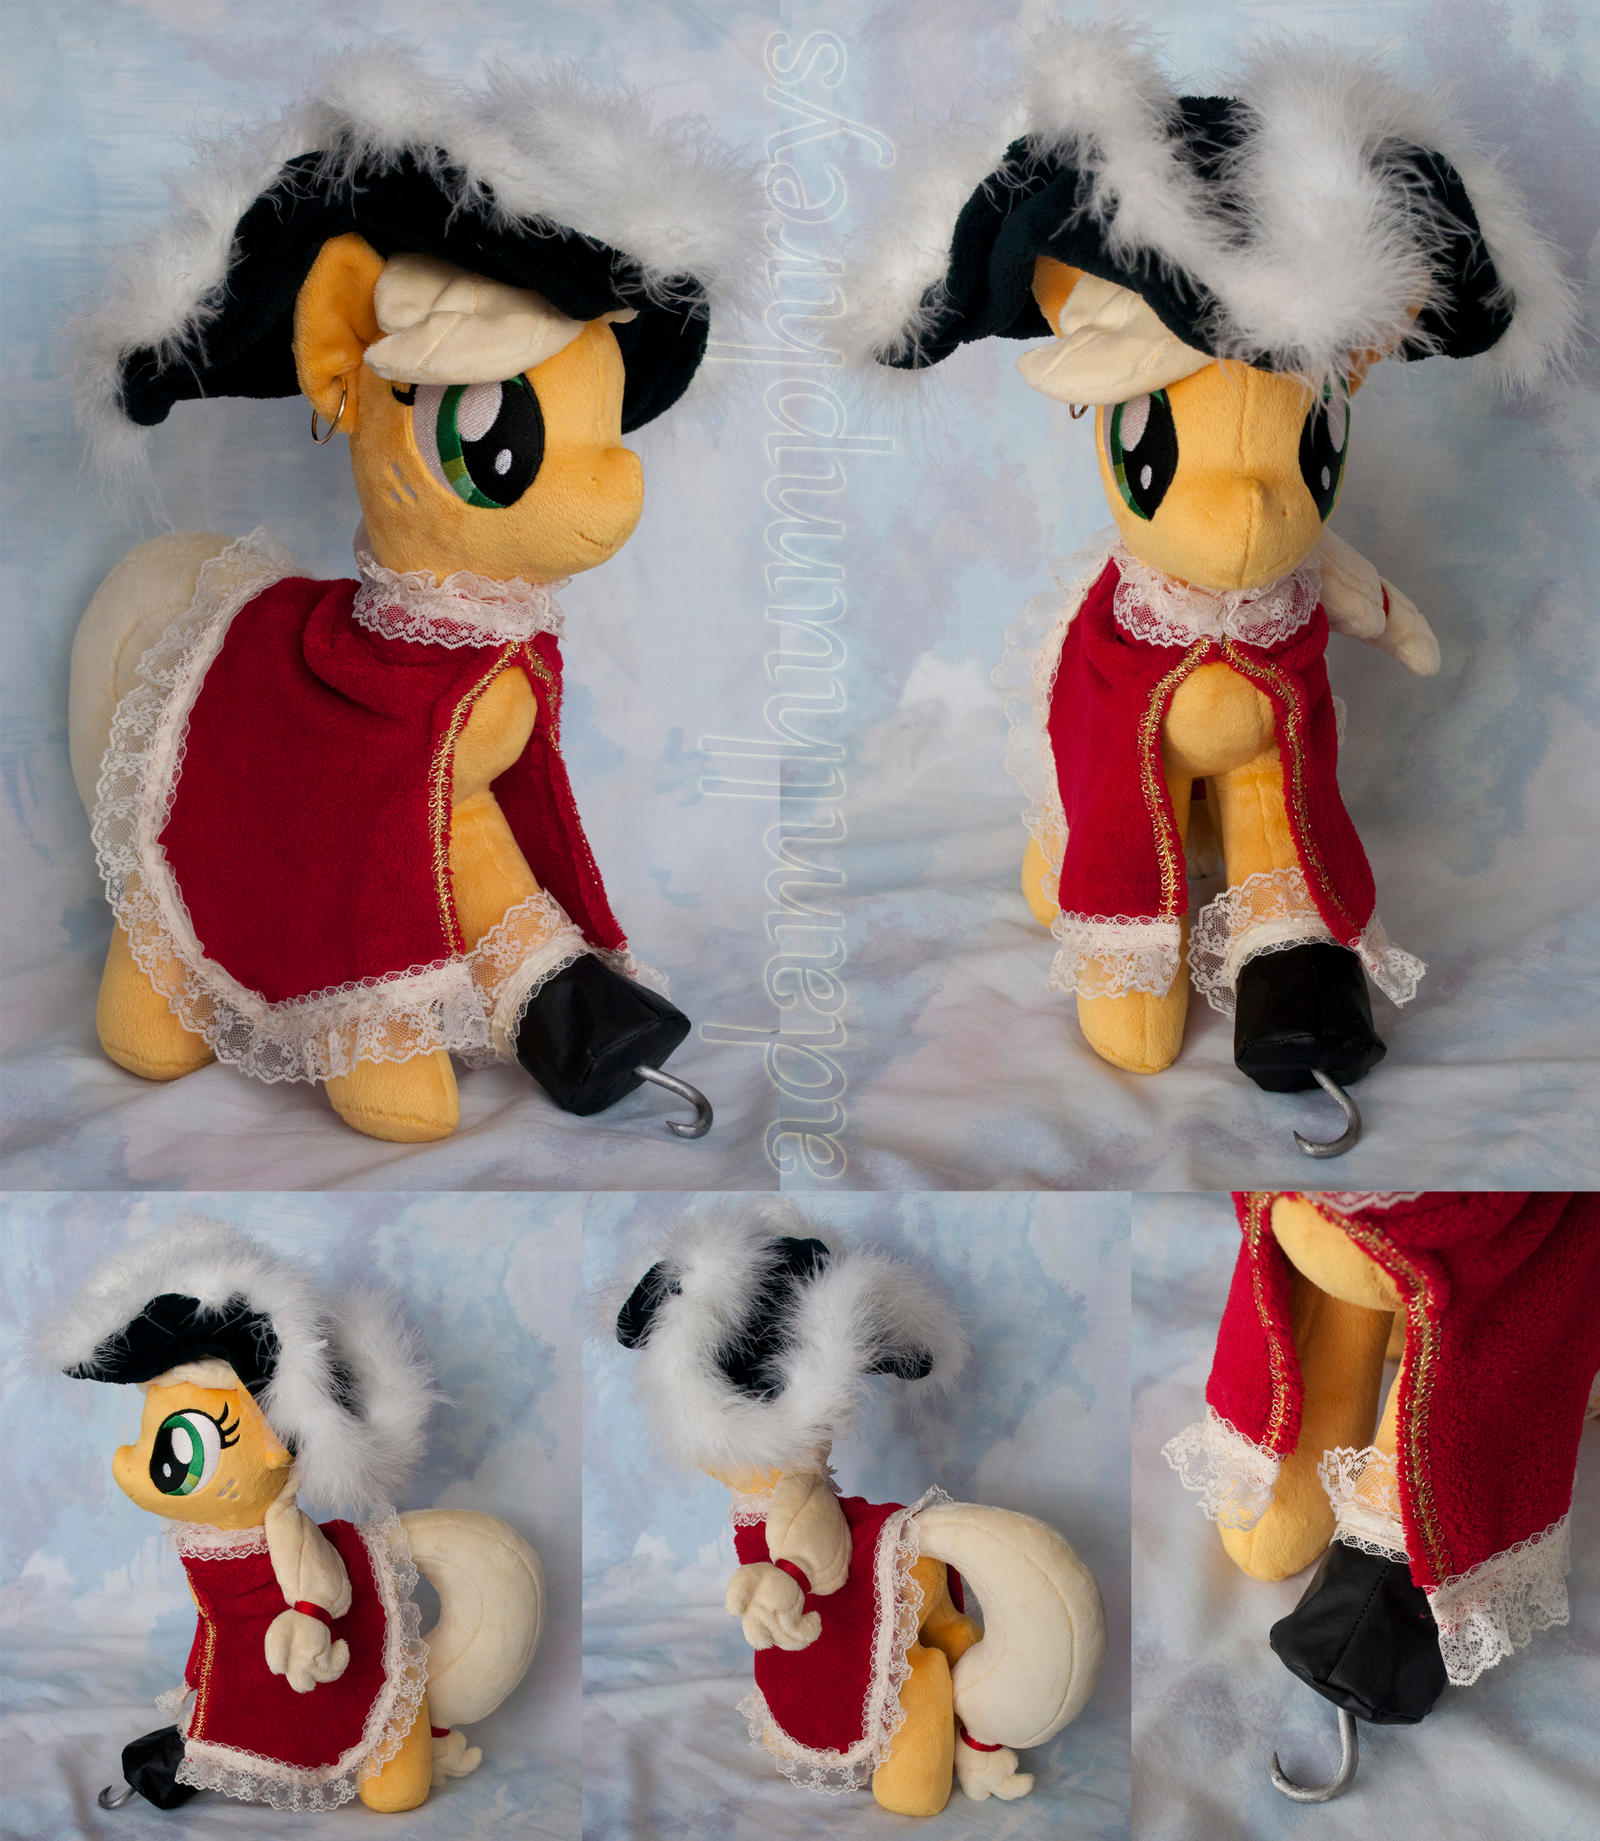 MLP Plushie Contest: Captain Jack Hook by adamlhumphreys